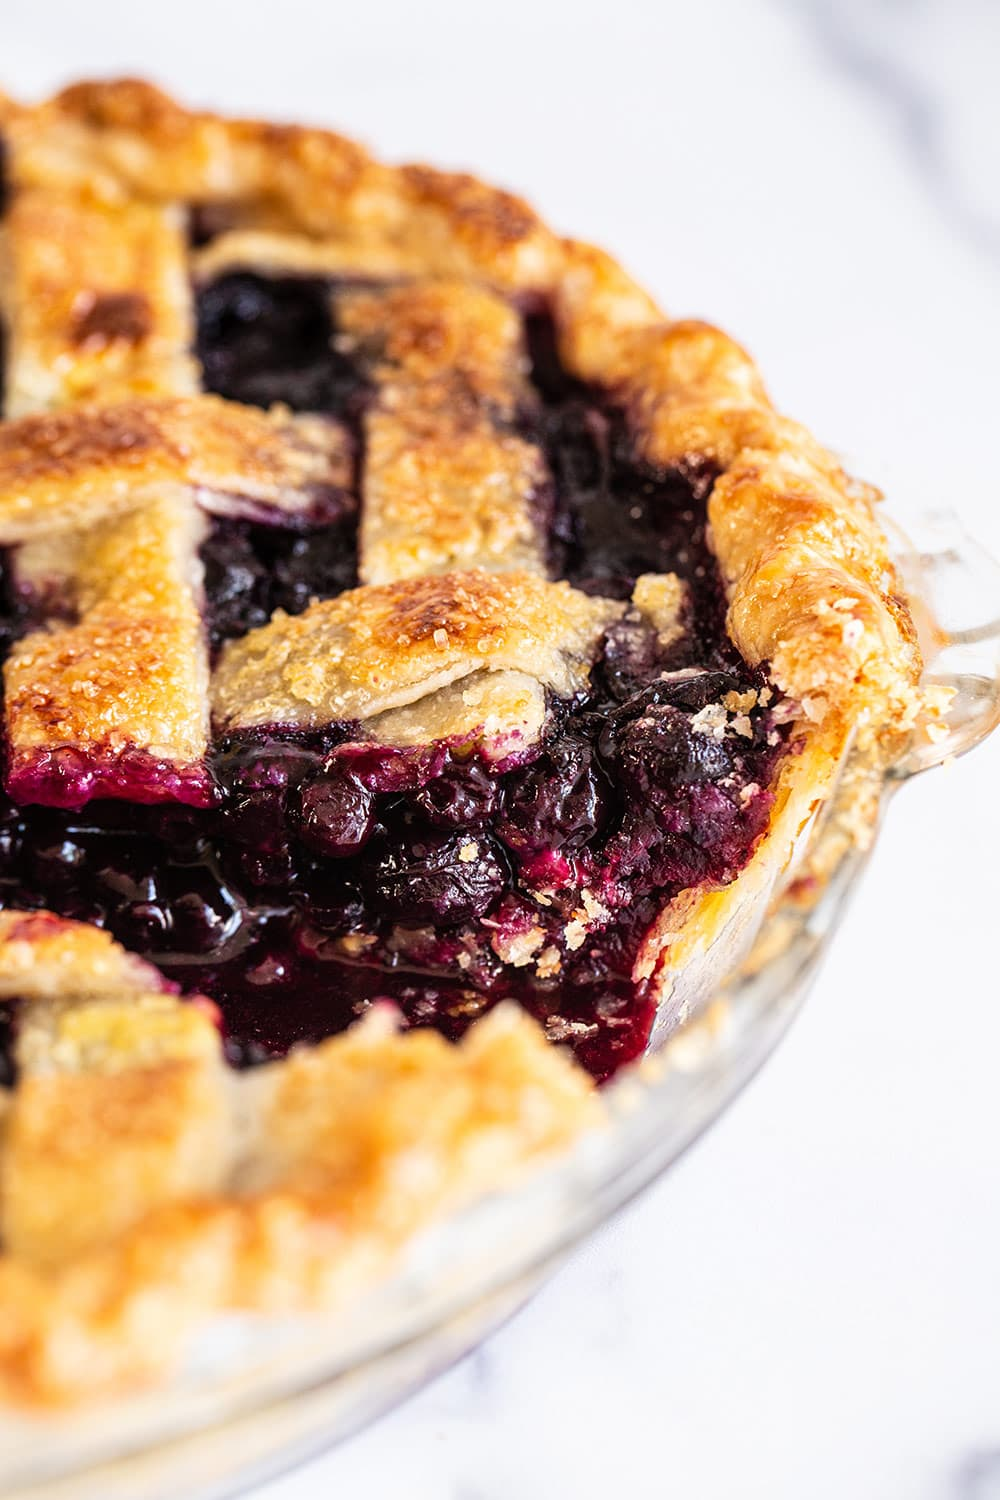 gooey blueberry pie filling with a flaky pie crust inside of a pie dish